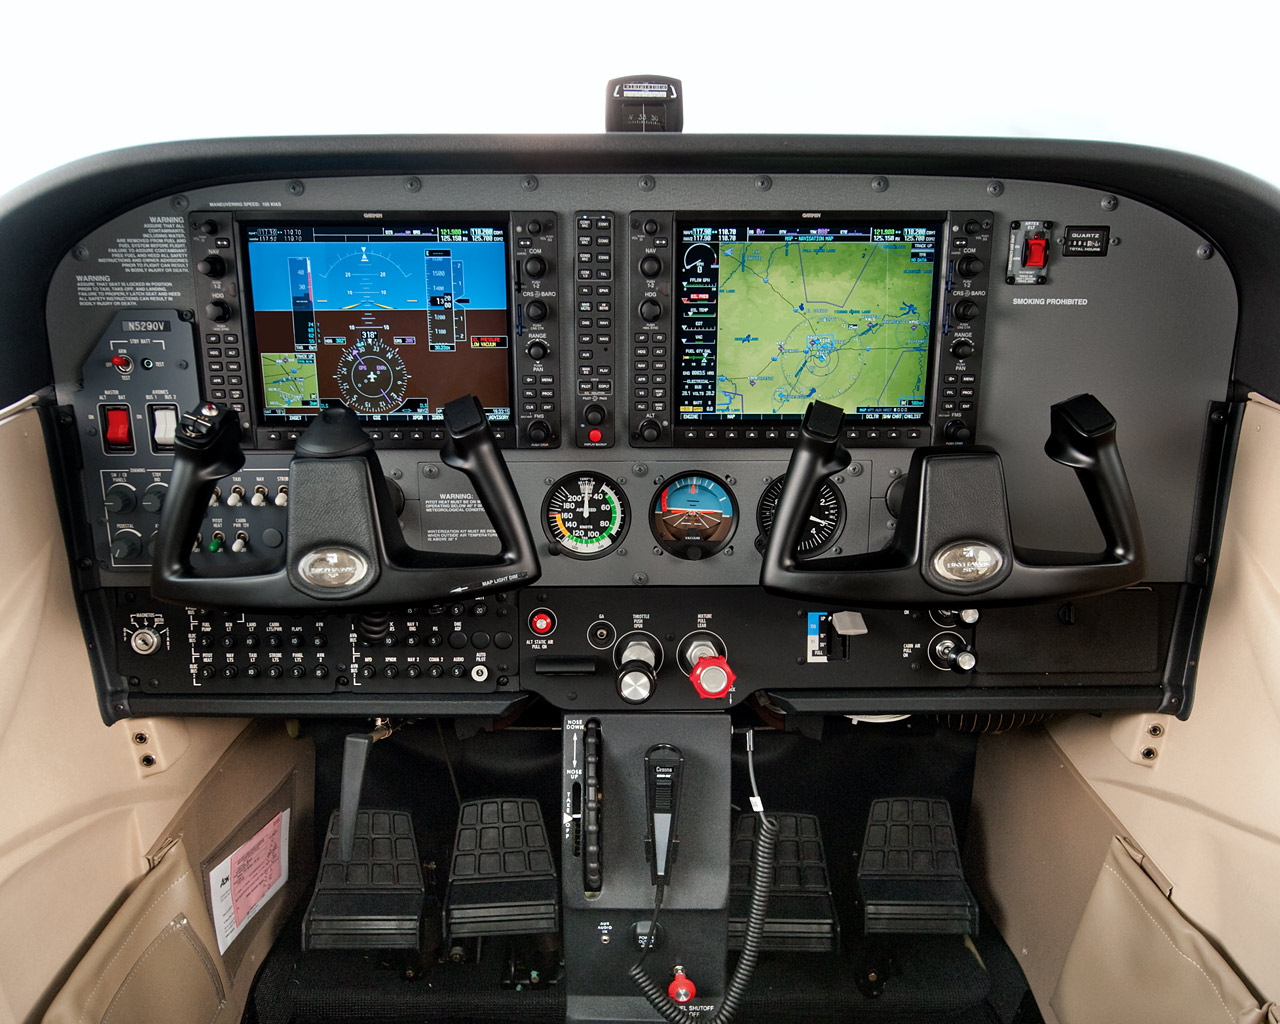 autopilot helicopter with Cessna 162 on APA Legacy SAM Upgrades together with rczon additionally Arduroller Self Balancing Robot moreover 571 besides 2006 Cessna 172sp Skyhawk.